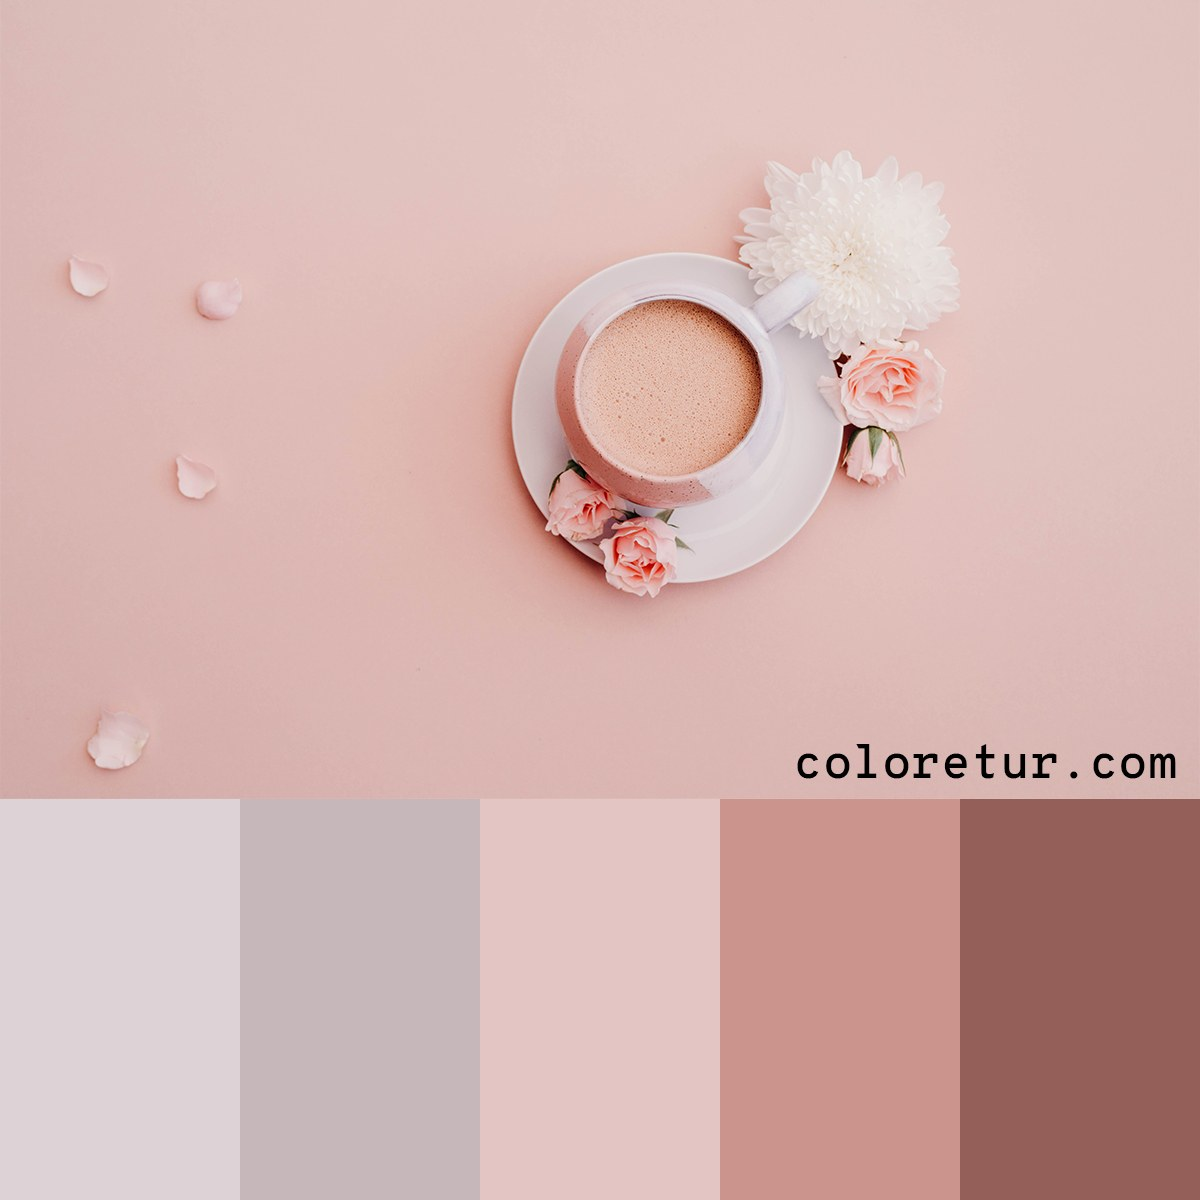 Pale pink palette from the milky morning coffee